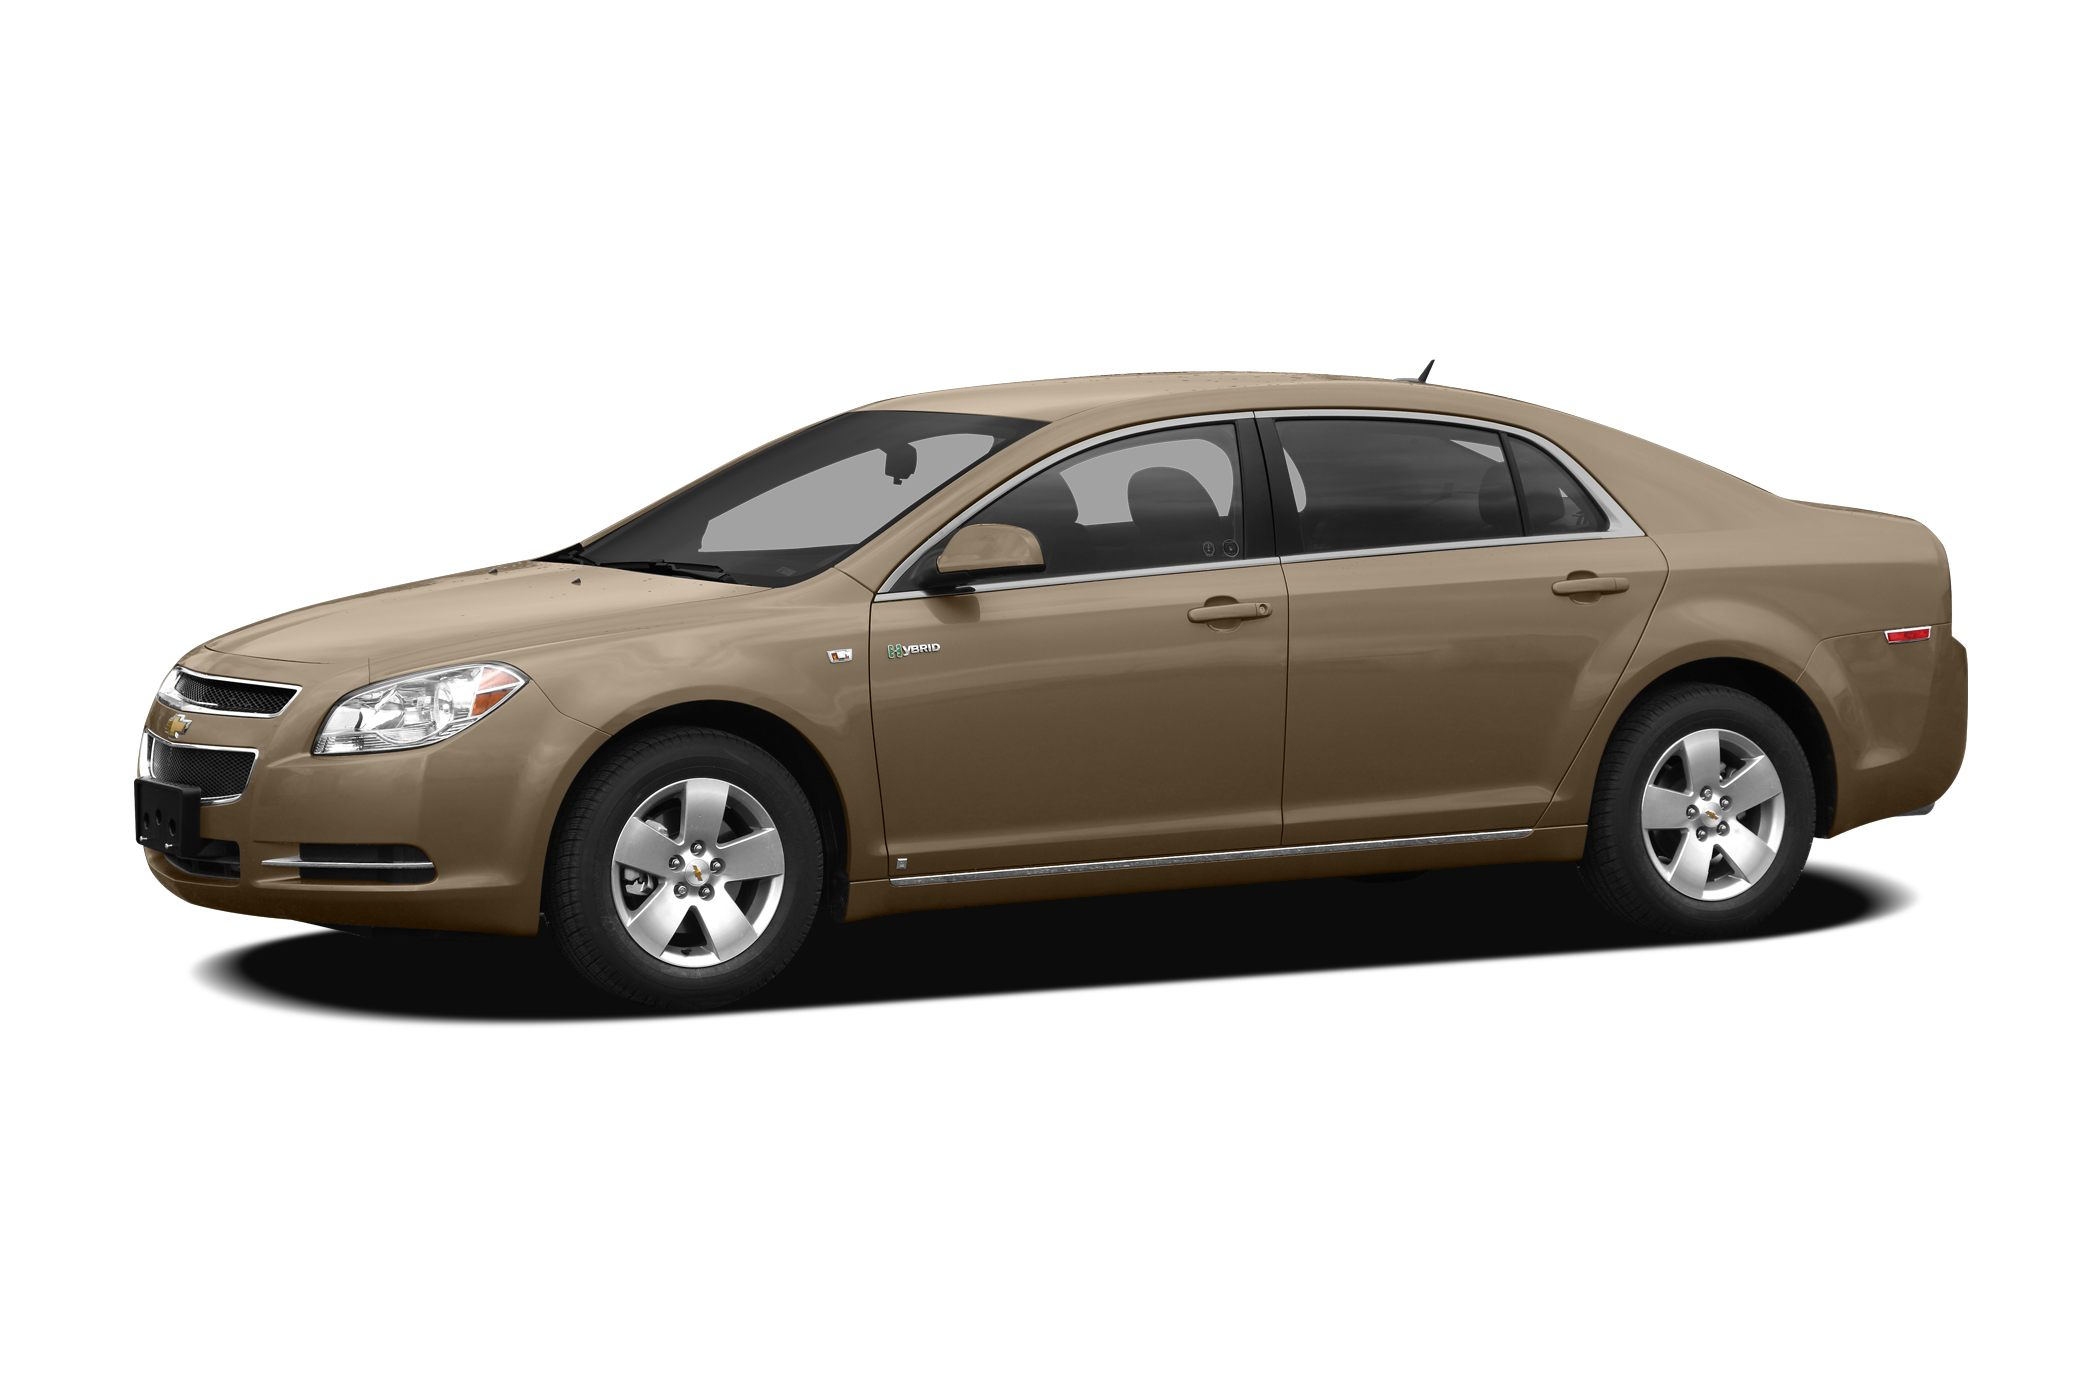 2008 Chevrolet Malibu Hybrid Pricing And Specs